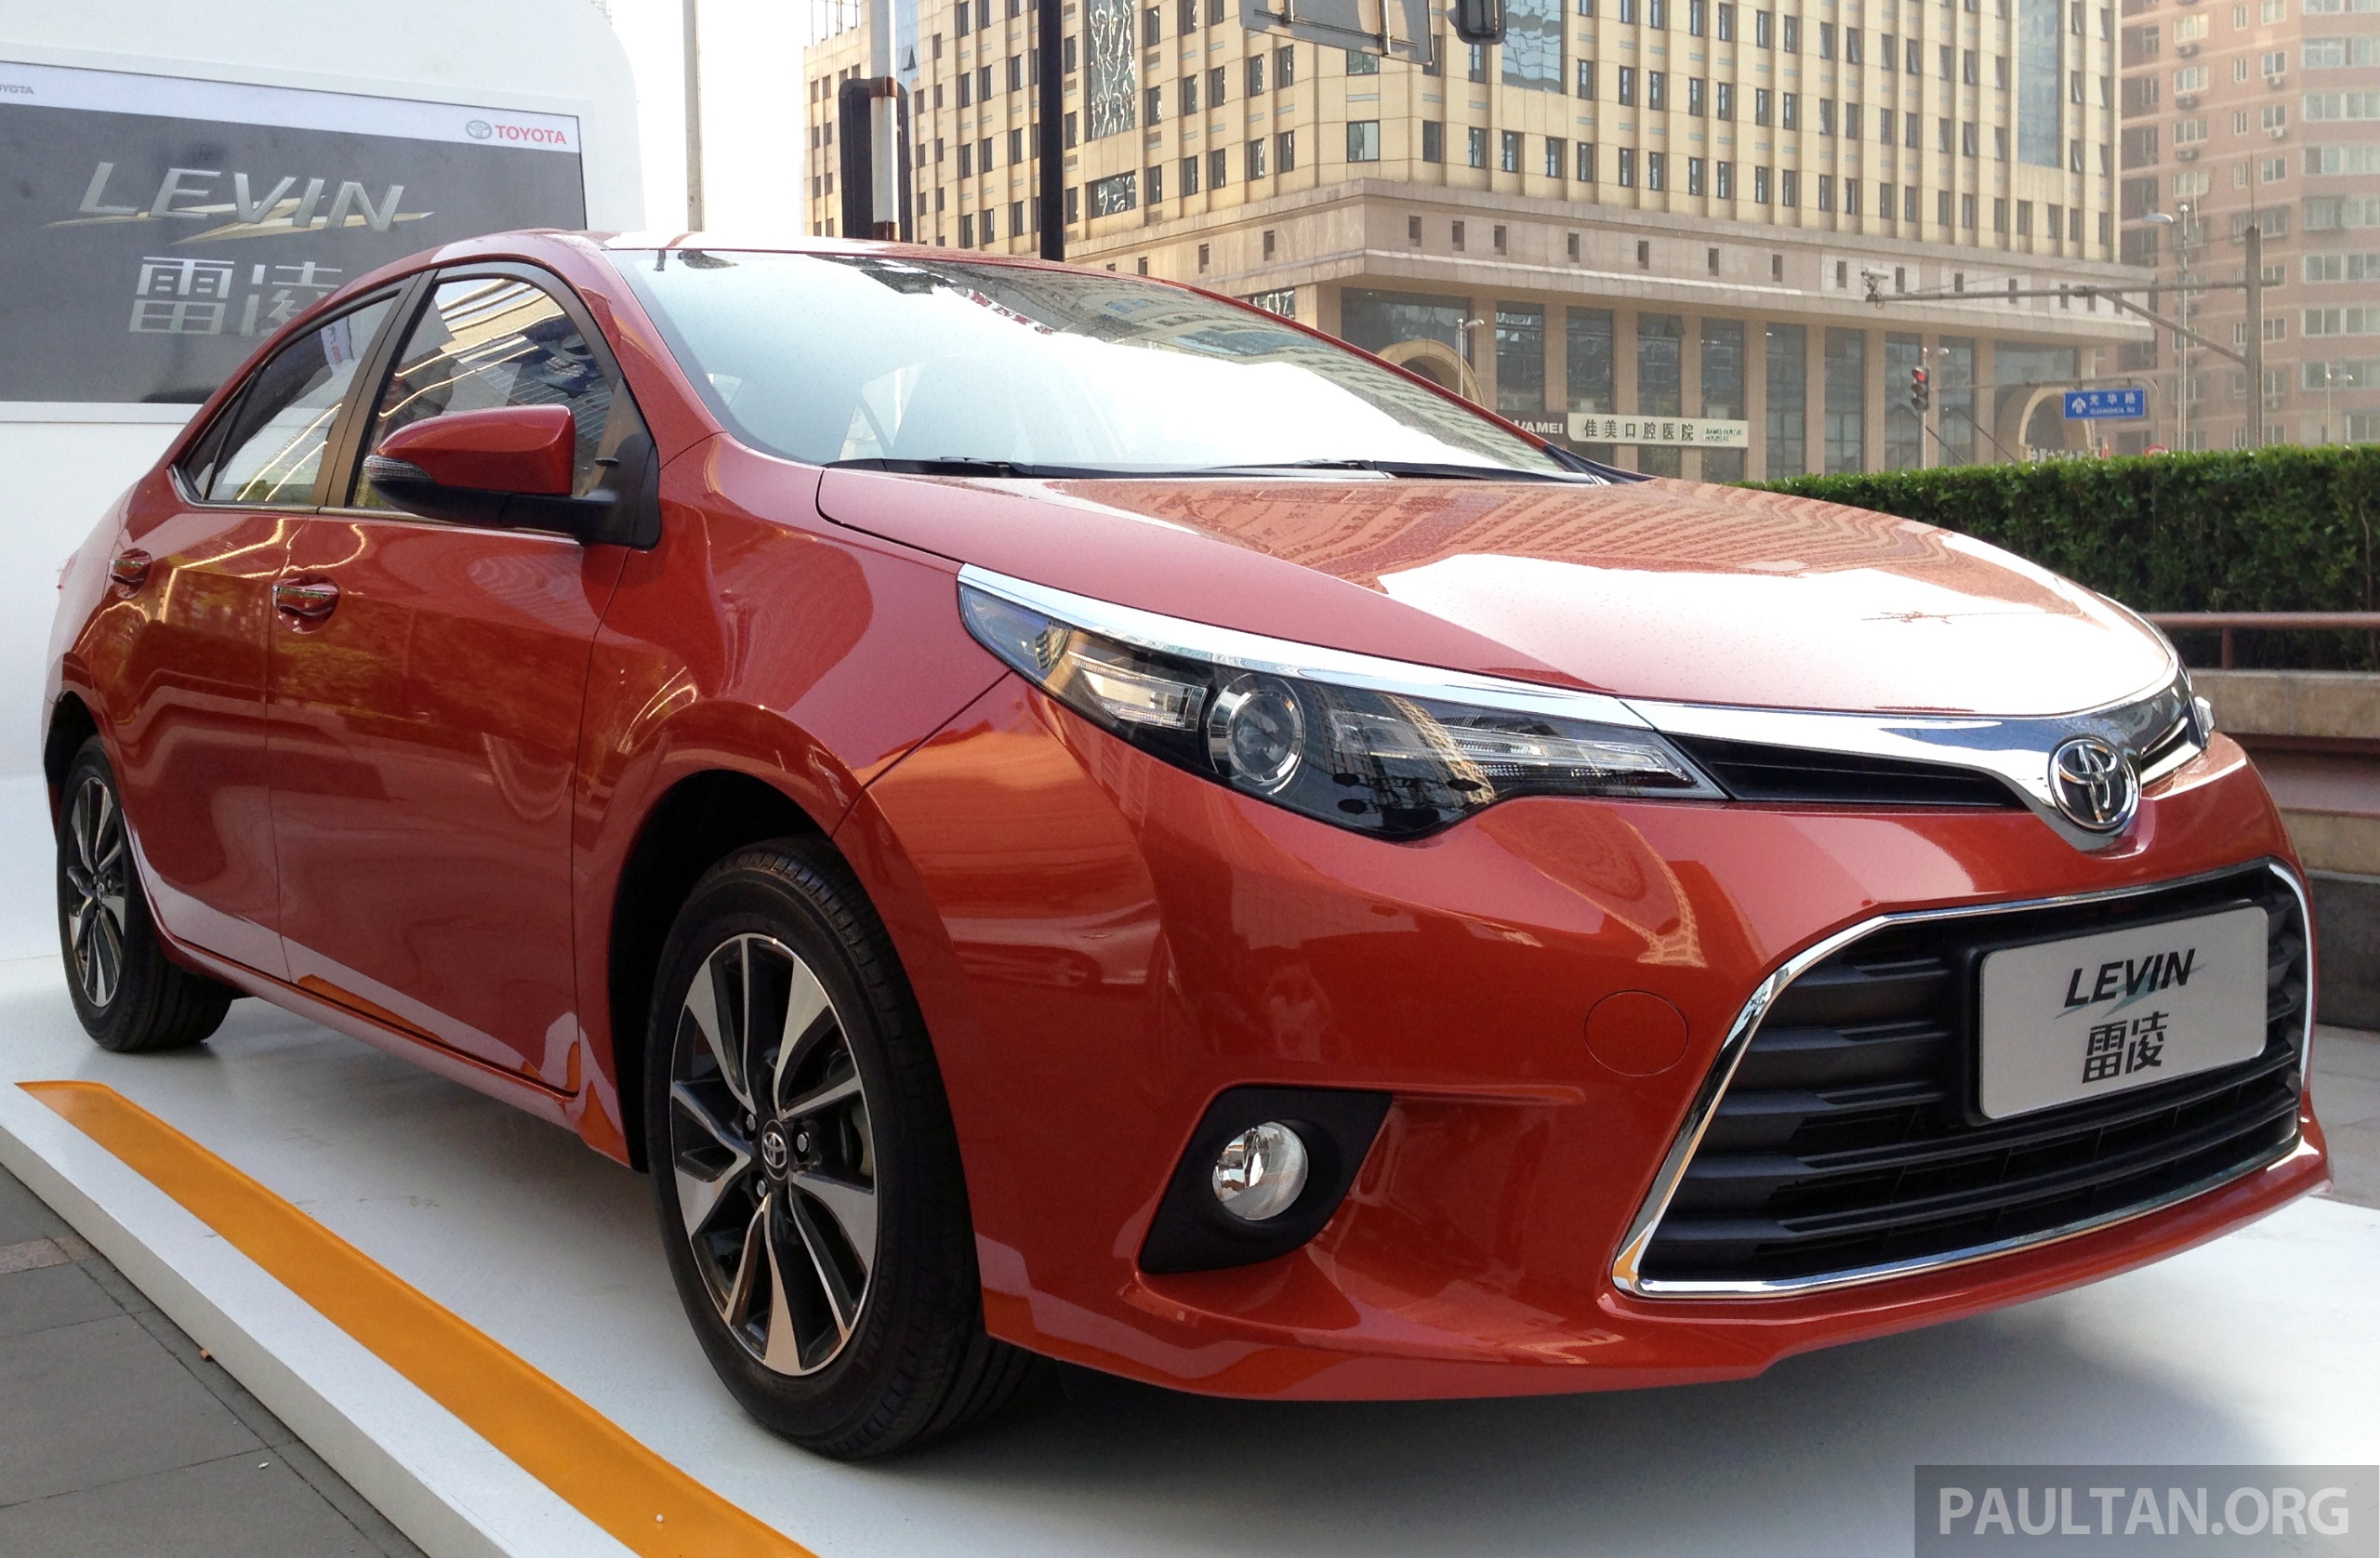 Toyota Corolla Levin Hybrids To Be Made In China